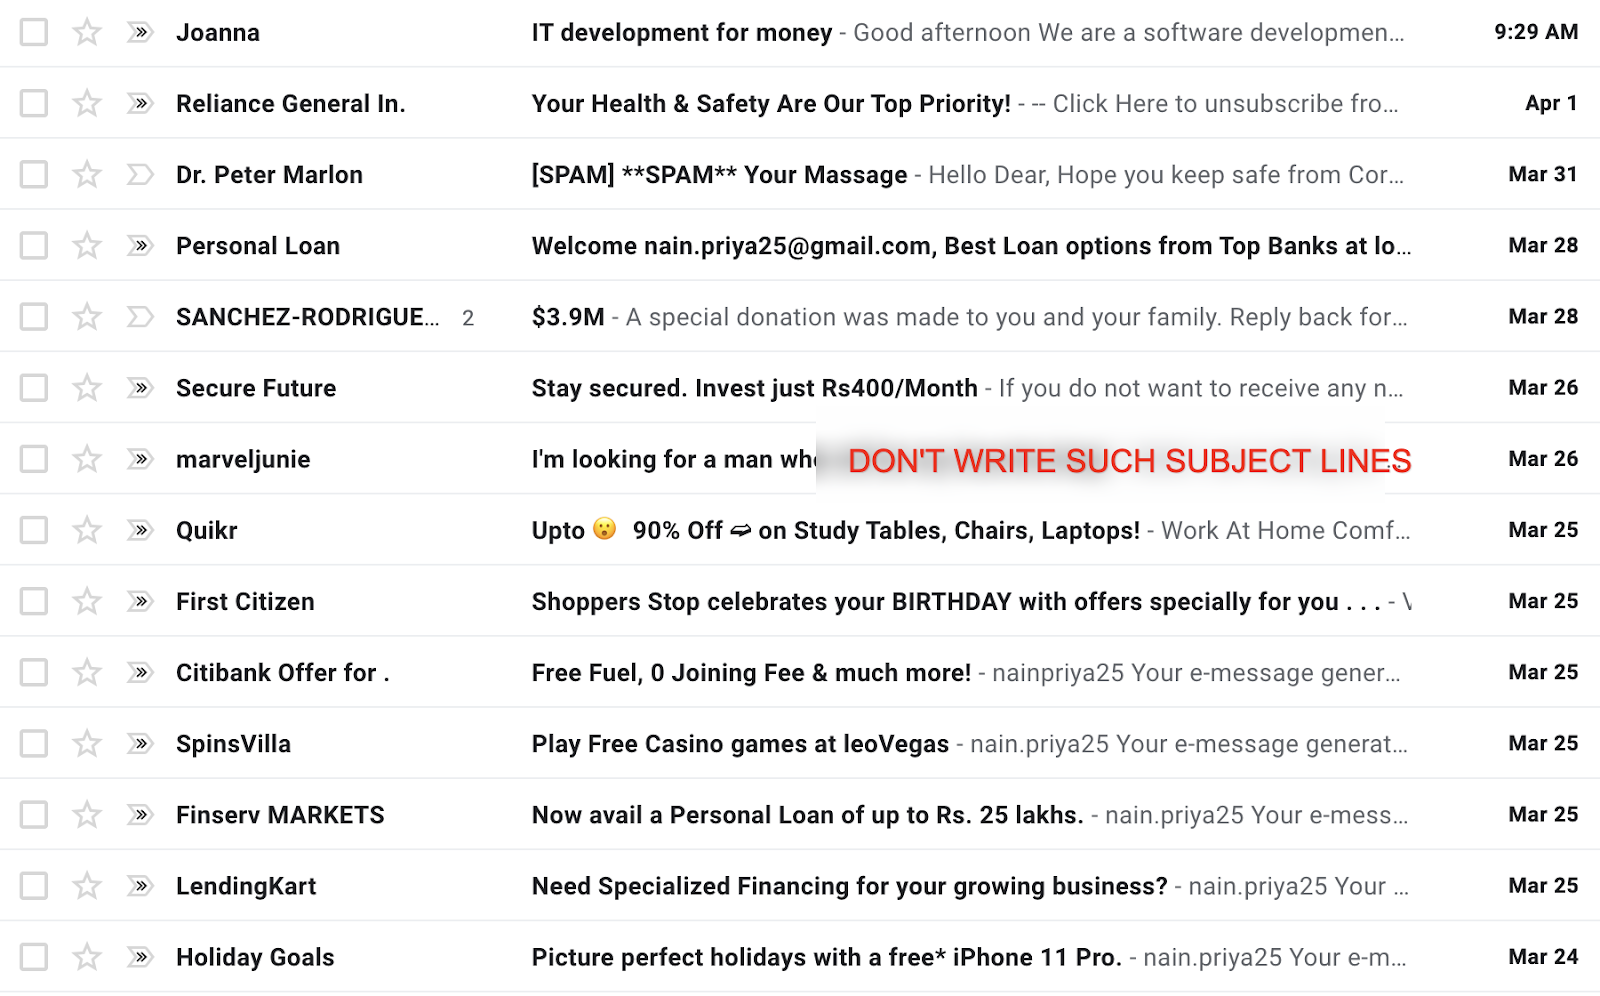 Subject lines to avoid